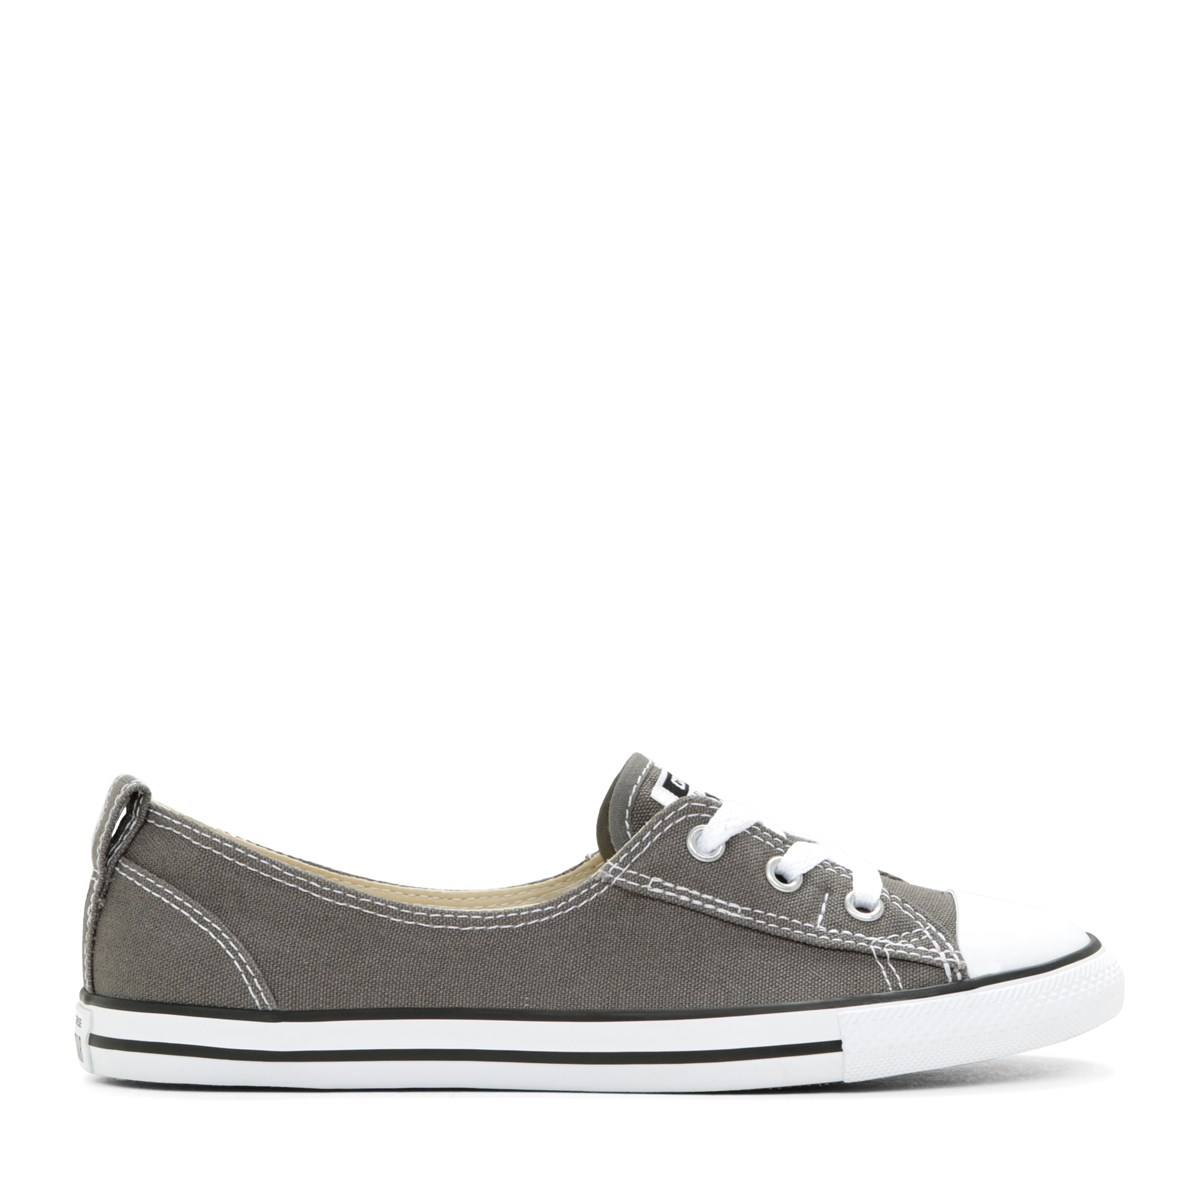 Women's Chuck Taylor All Star Ballet Slip-On Sneaker